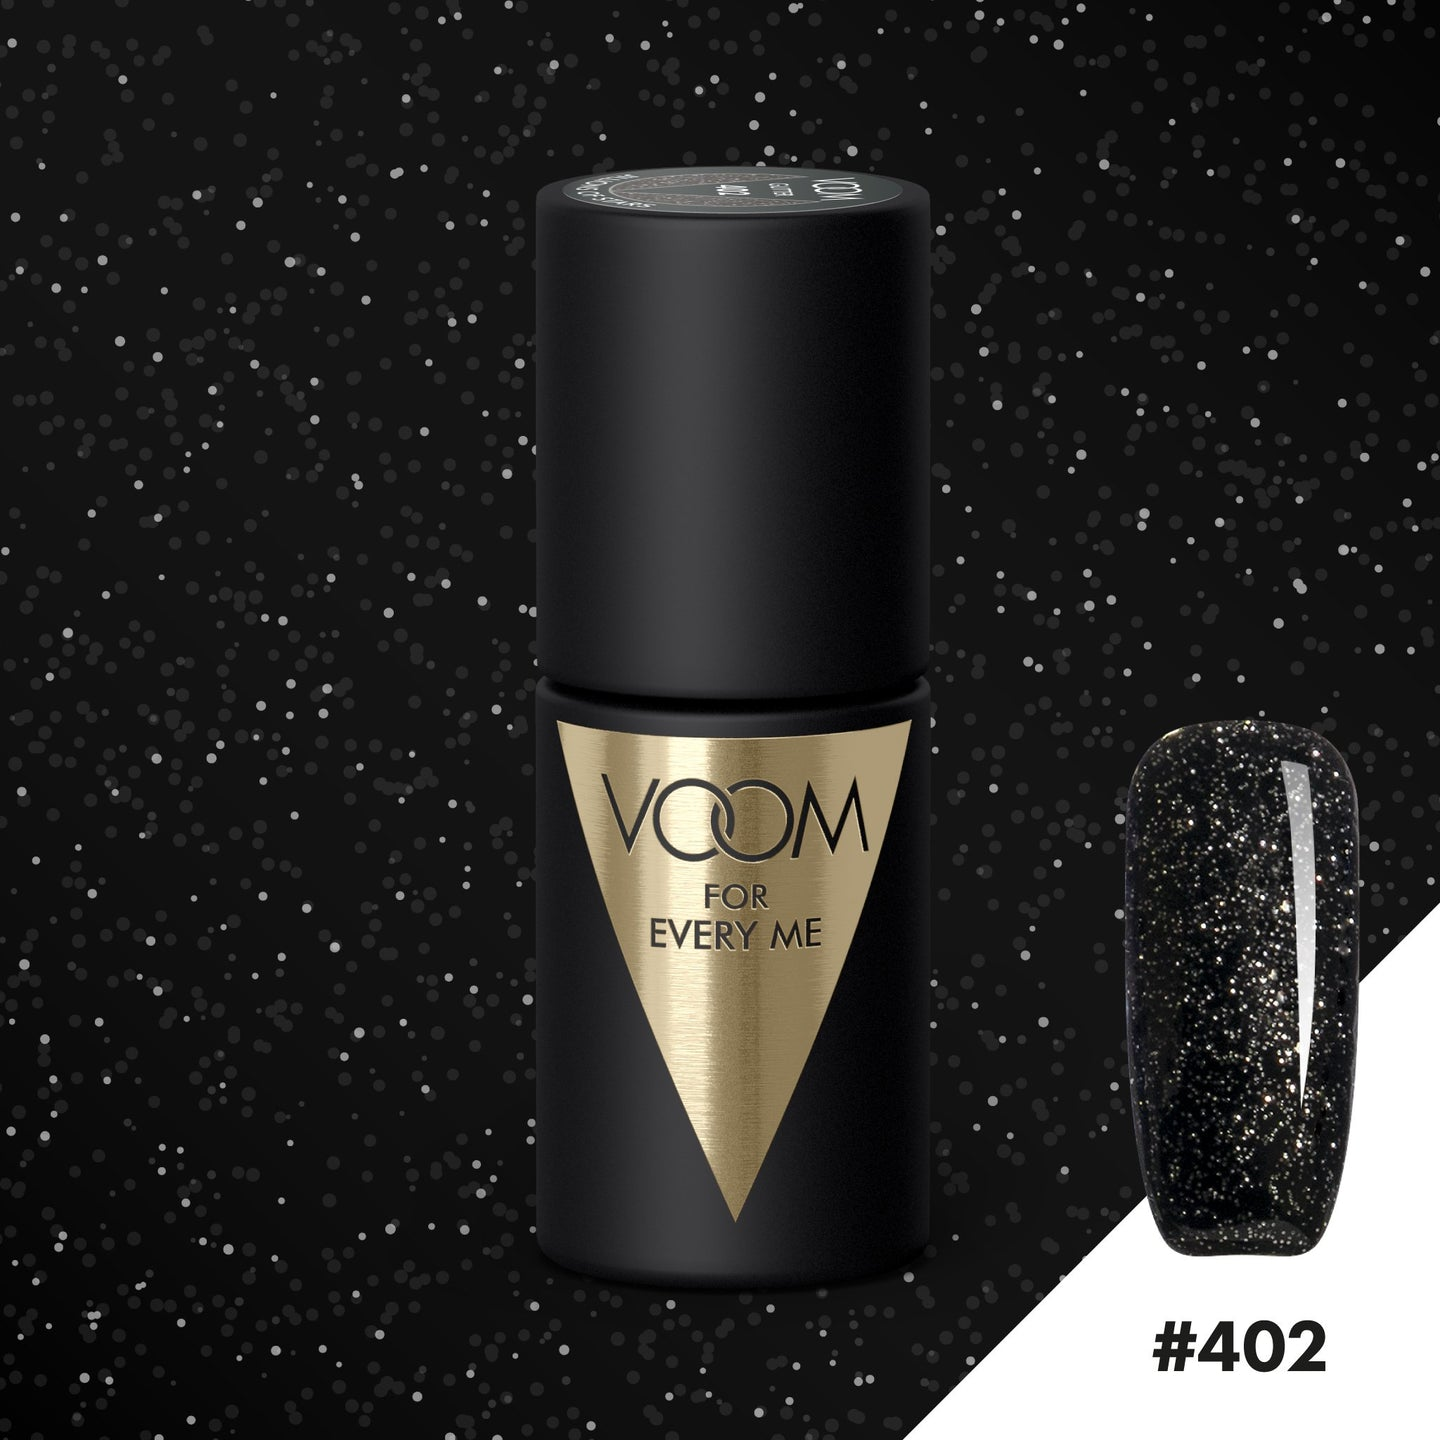 VOOM Soak Off Gel Polish #402 - Jillions Of Stars (.17 fl. oz. | 5 ml)